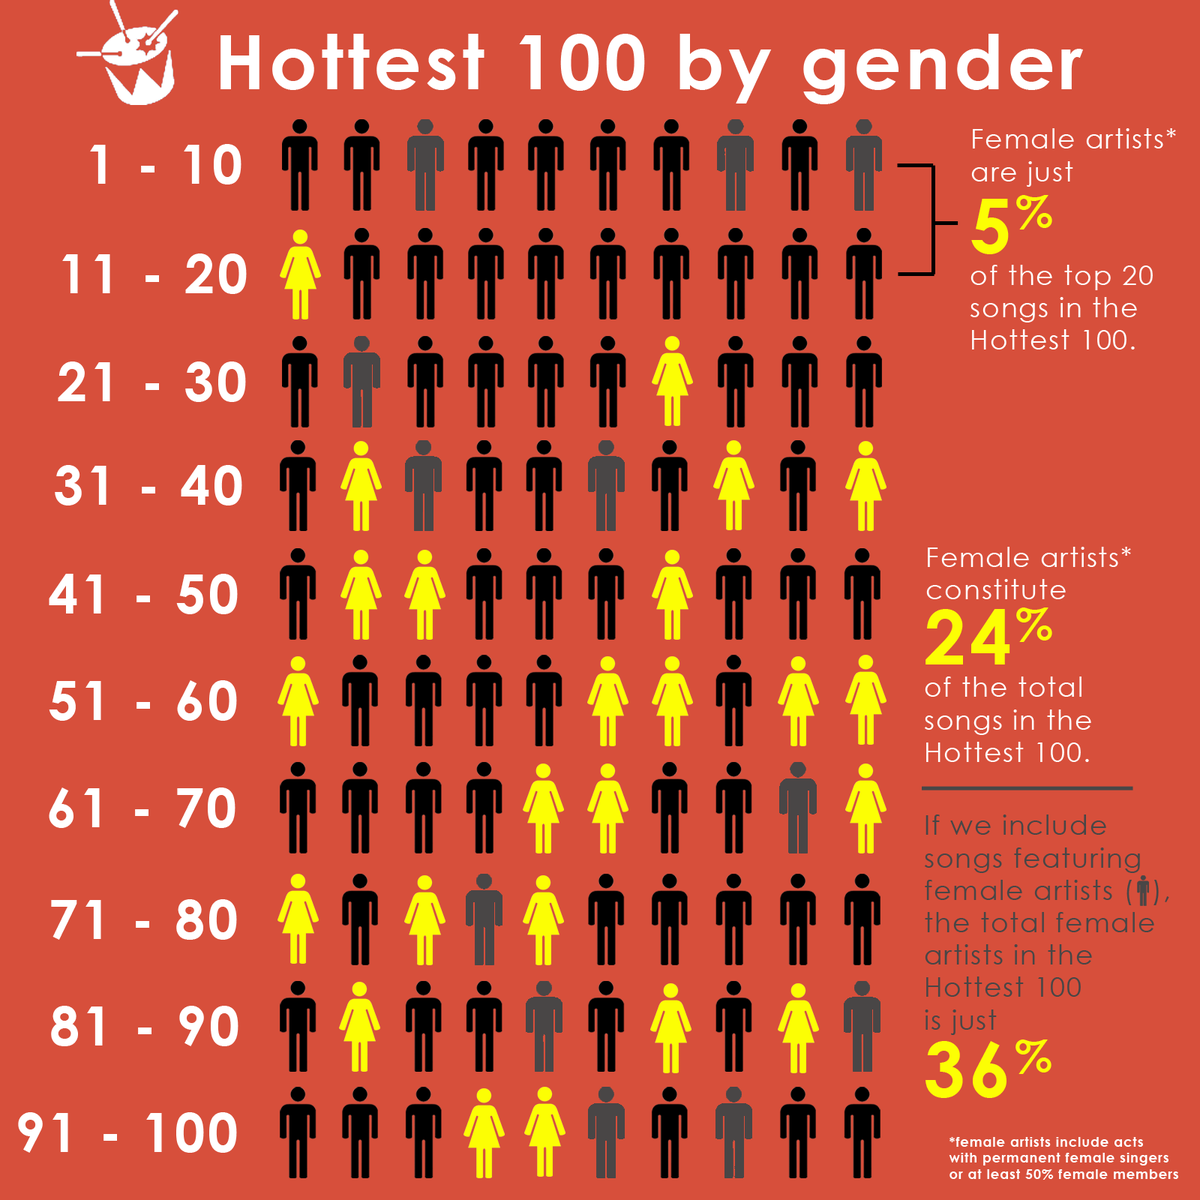 After suggestion by @LaurenBeldi (and in @CaseyBriggs' shadow), I made this on the #Hottest100's gender breakdown https://t.co/lAEk7dURmO